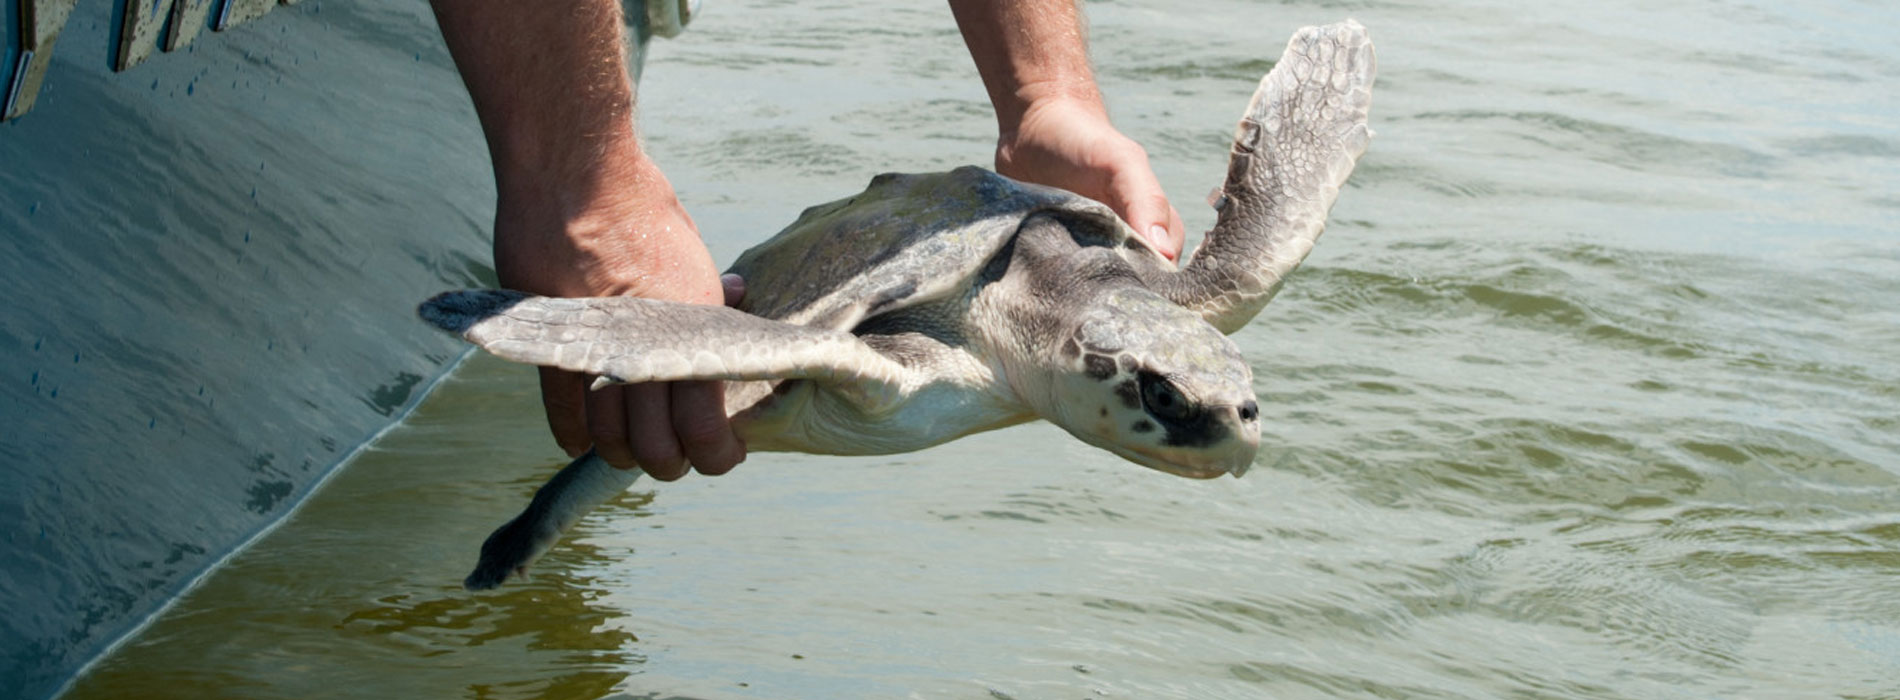 Rescued turtle gets released.